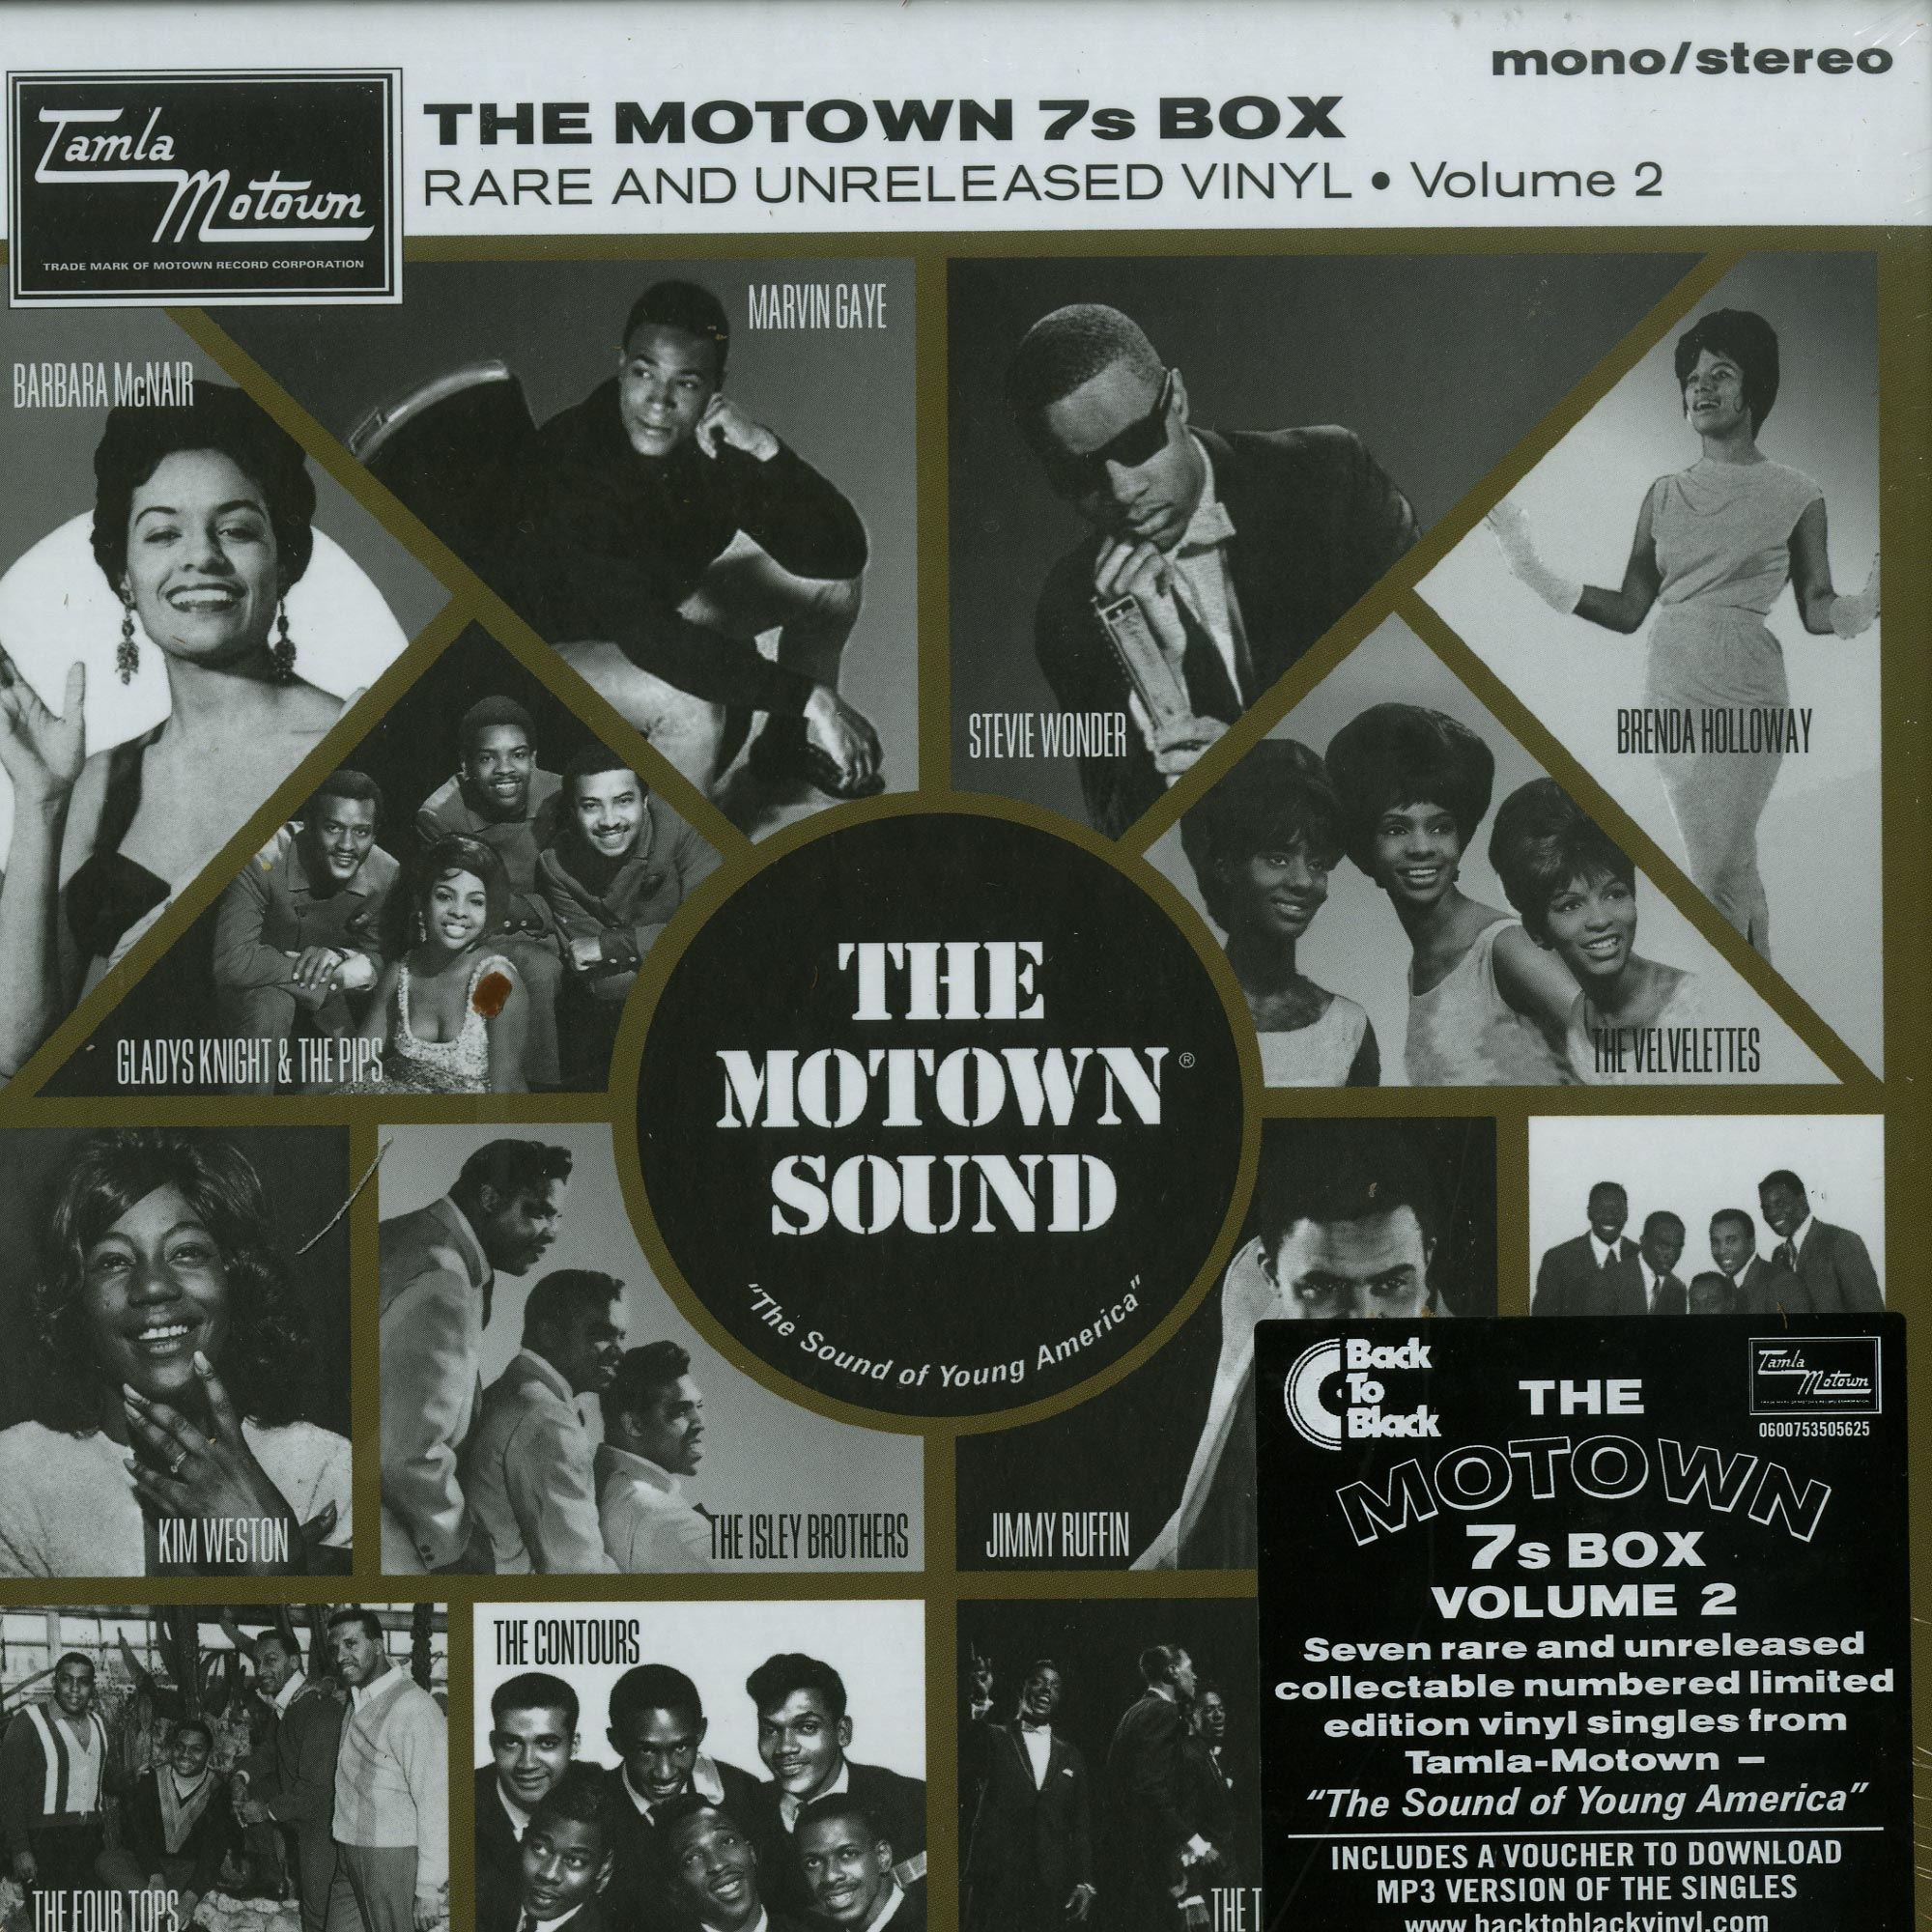 Various Artists - THE MOTOWN 7S BOX VOL. 2